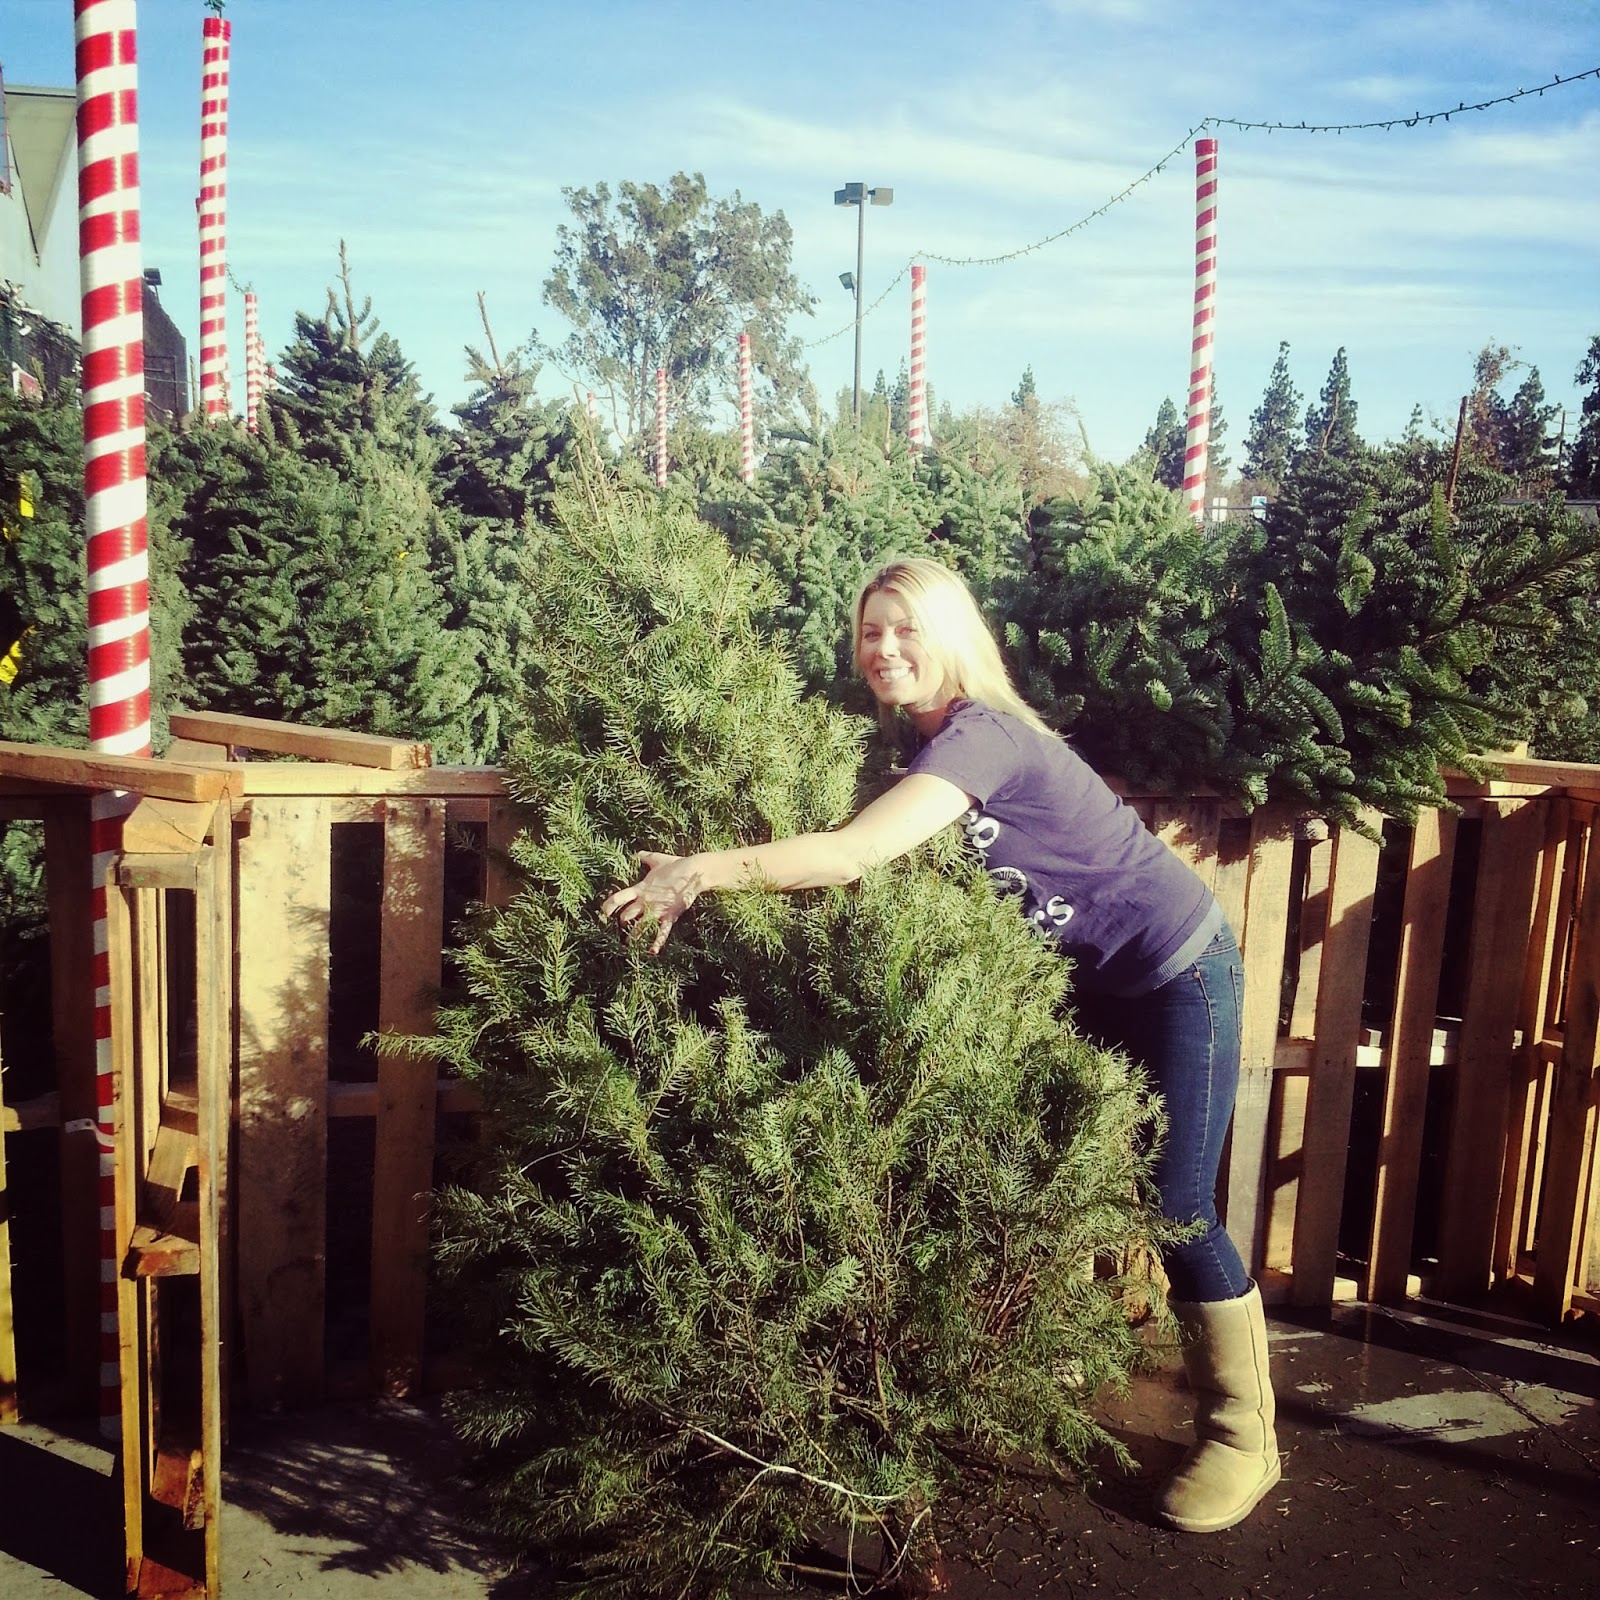 Real Christmas Trees Lowes: StarrJoy16: A Trip To Lowe's And A Christmas Tree